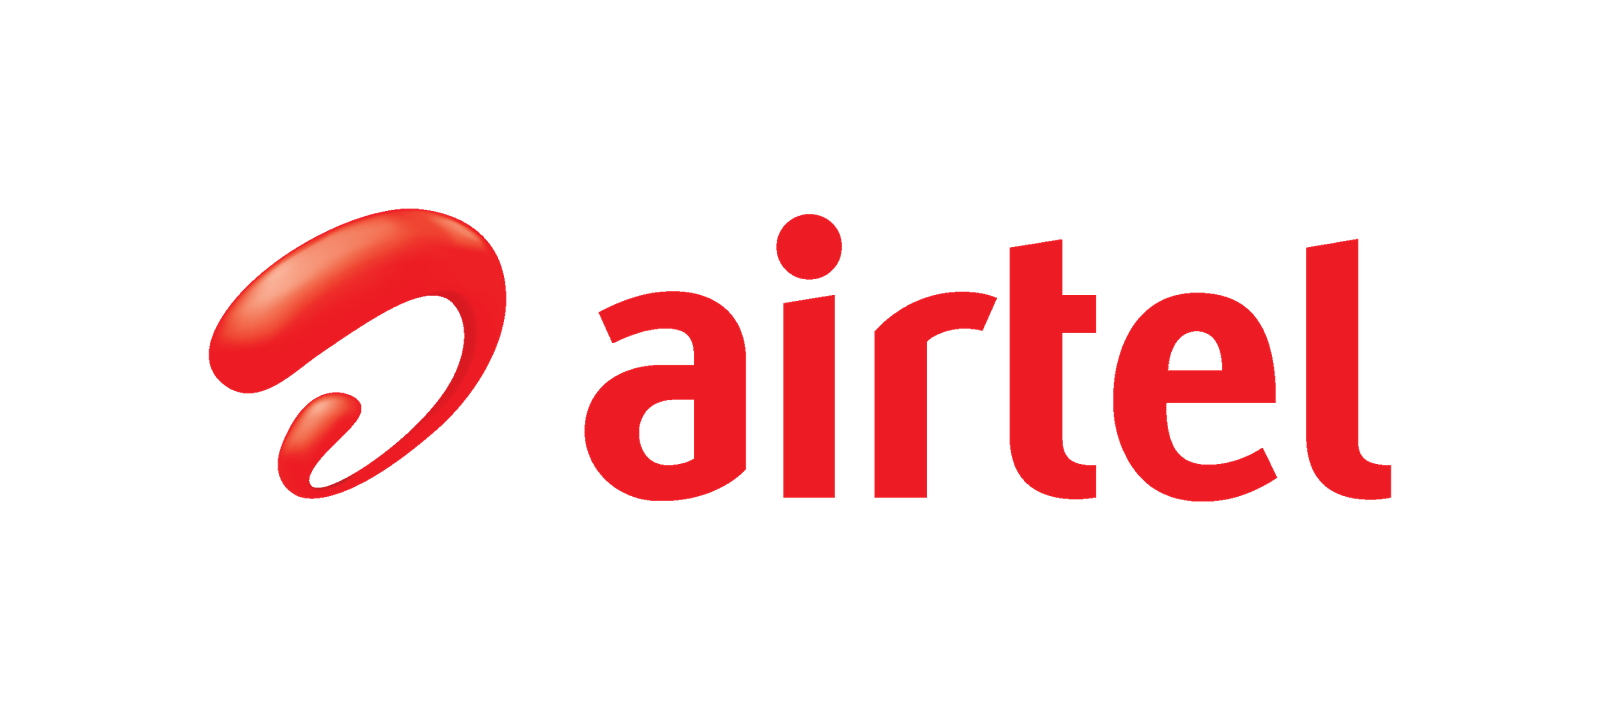 Airtel users get 2GB 4G data For Just Rs. 2 Only for 30 days [Tested in Kerala]